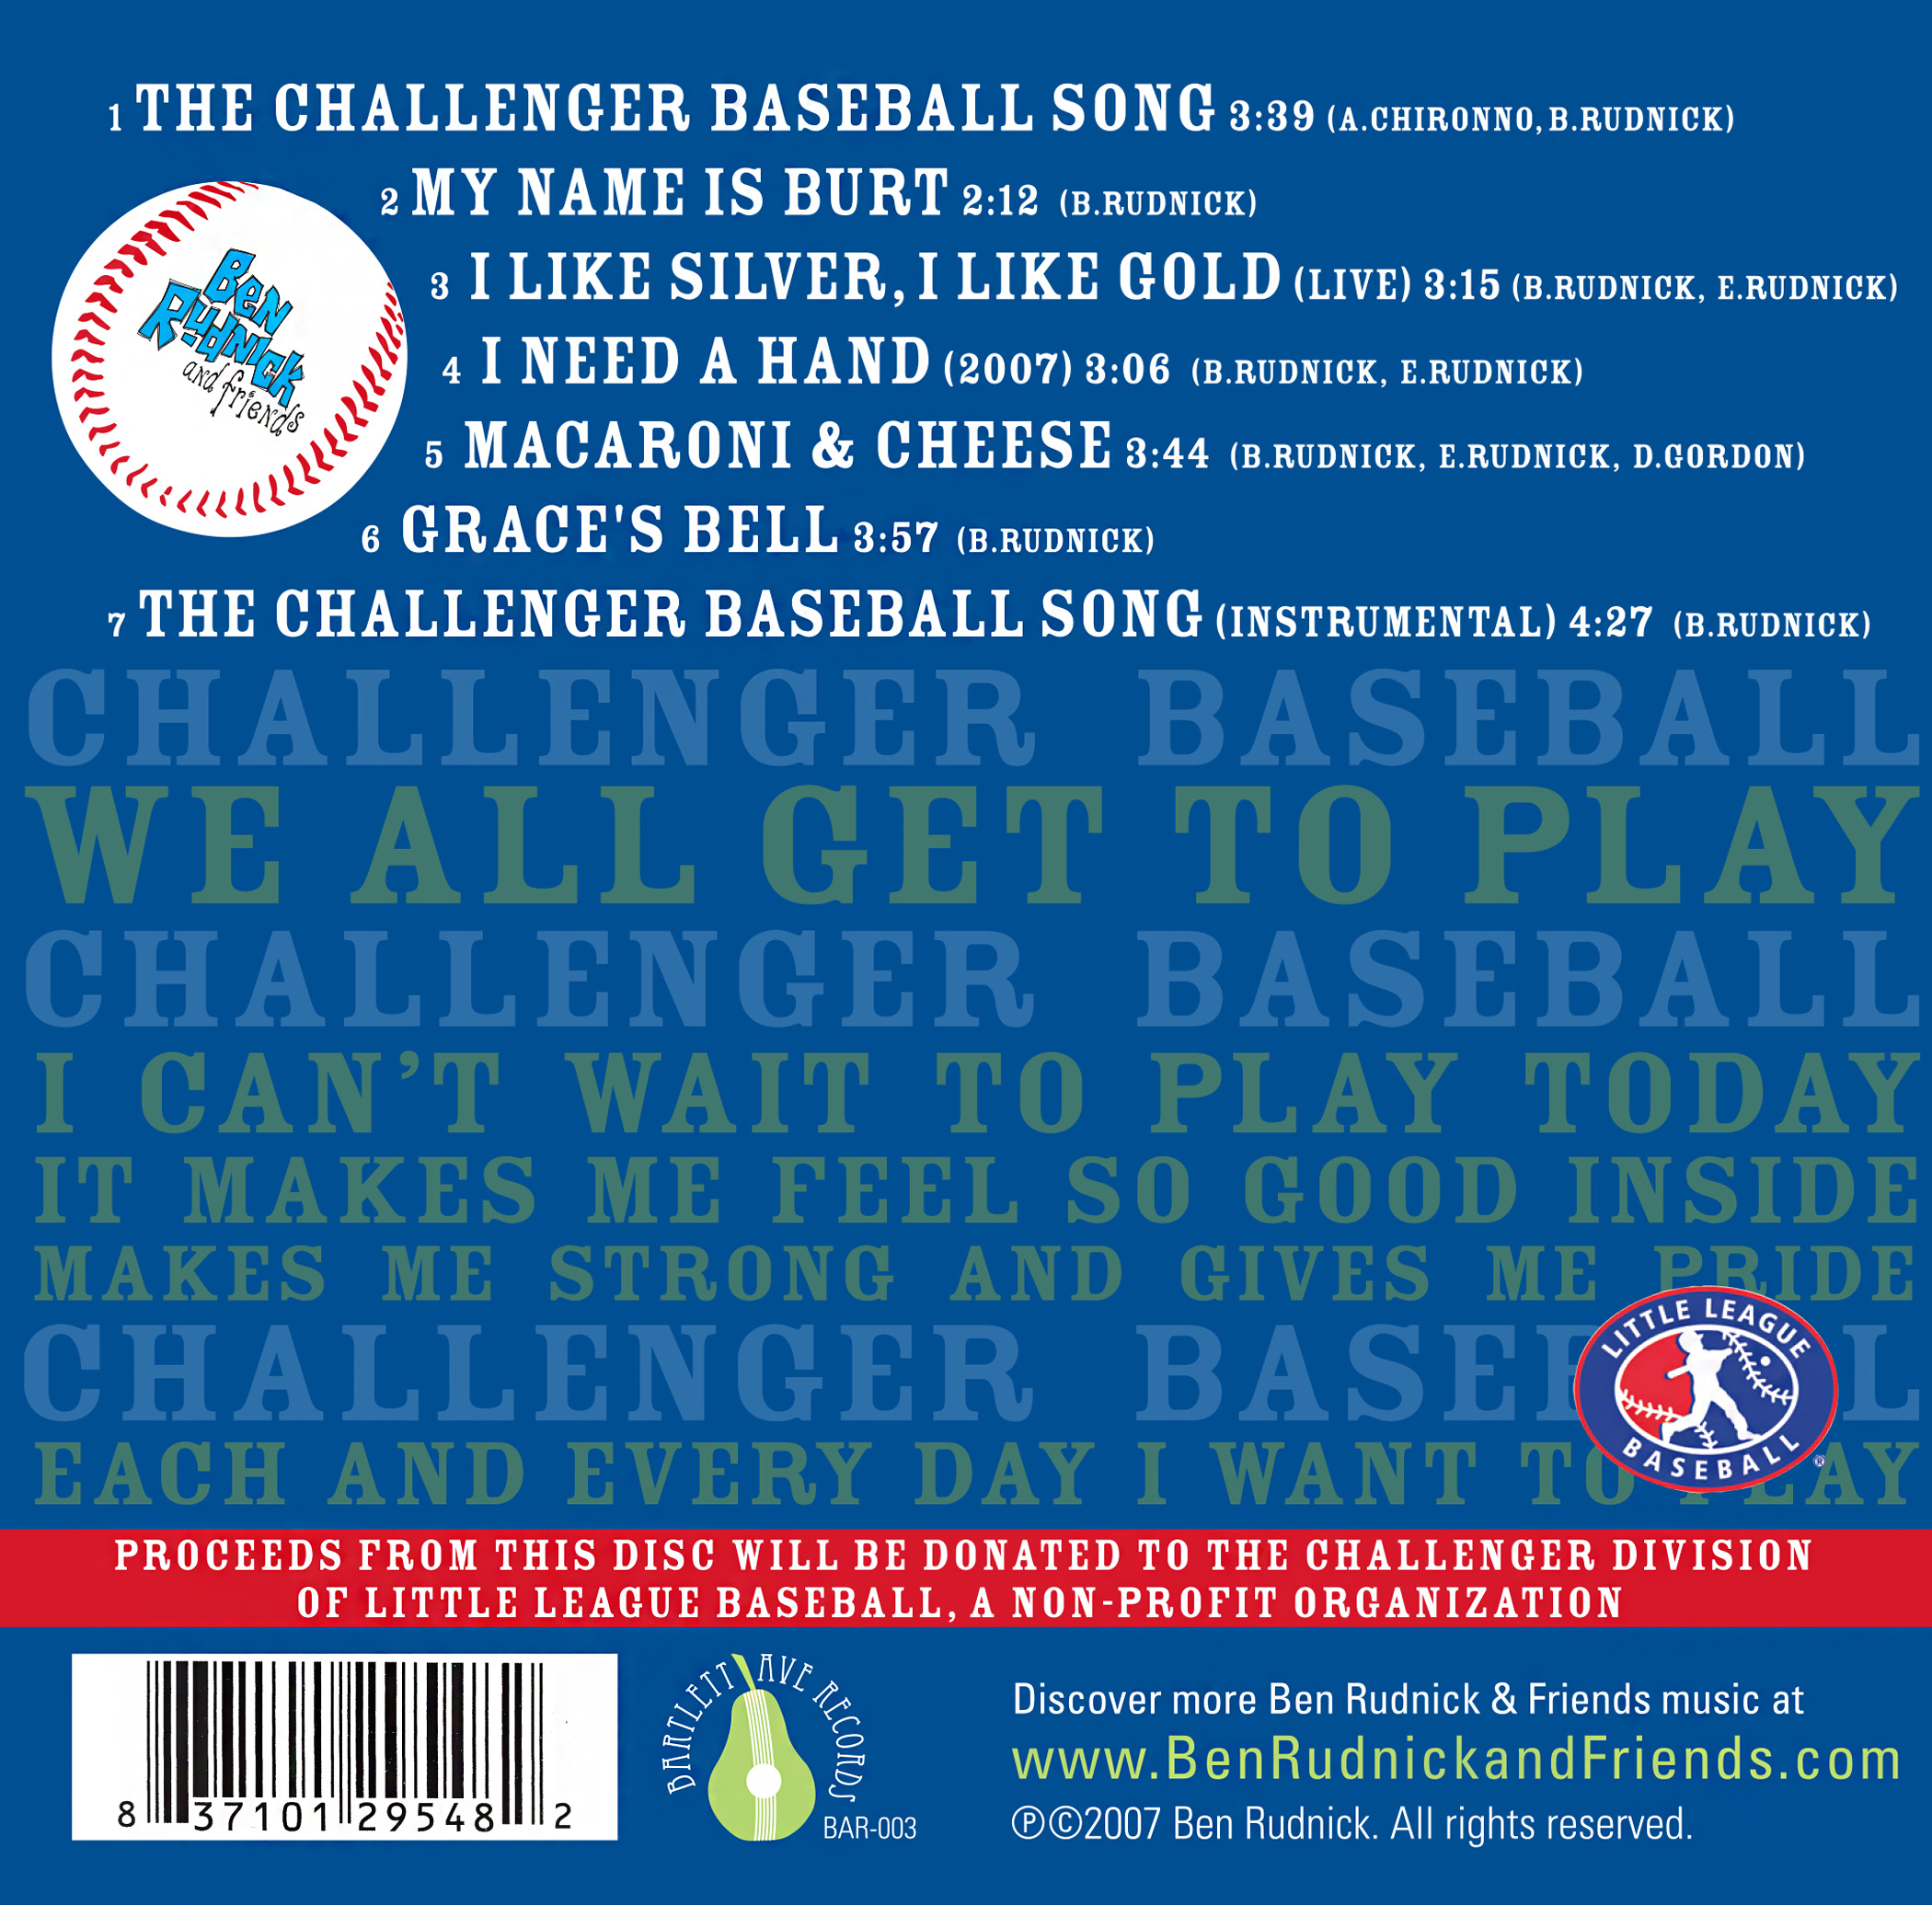 The Challnger Baseball Song CD back cover